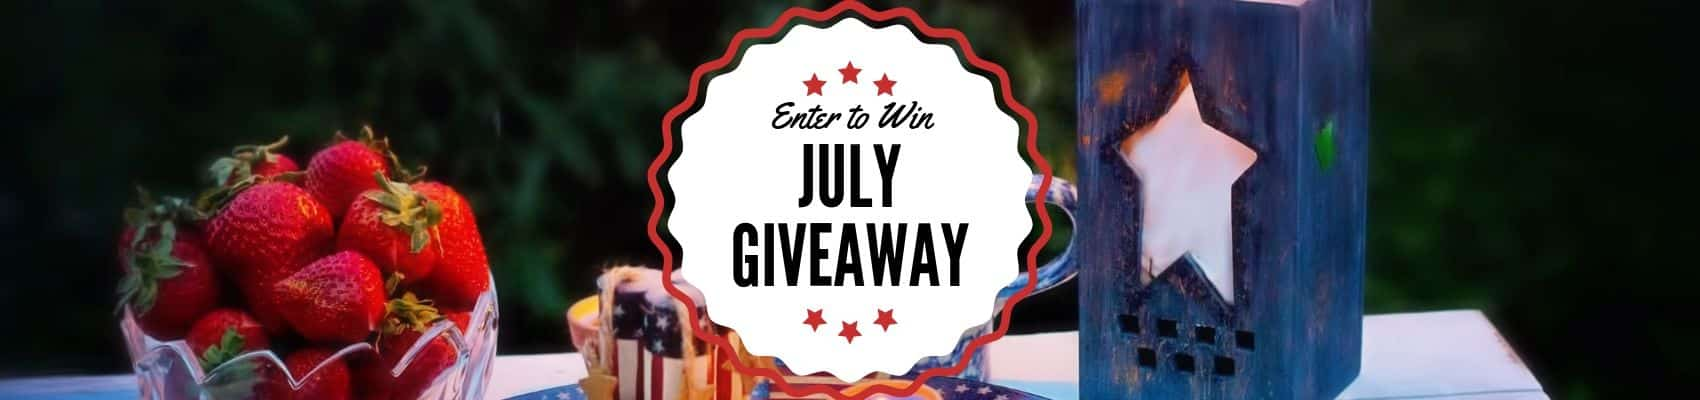 SCENTSY JULY 2019 GIVEAWAY INCANDESCENT WAX MELTS